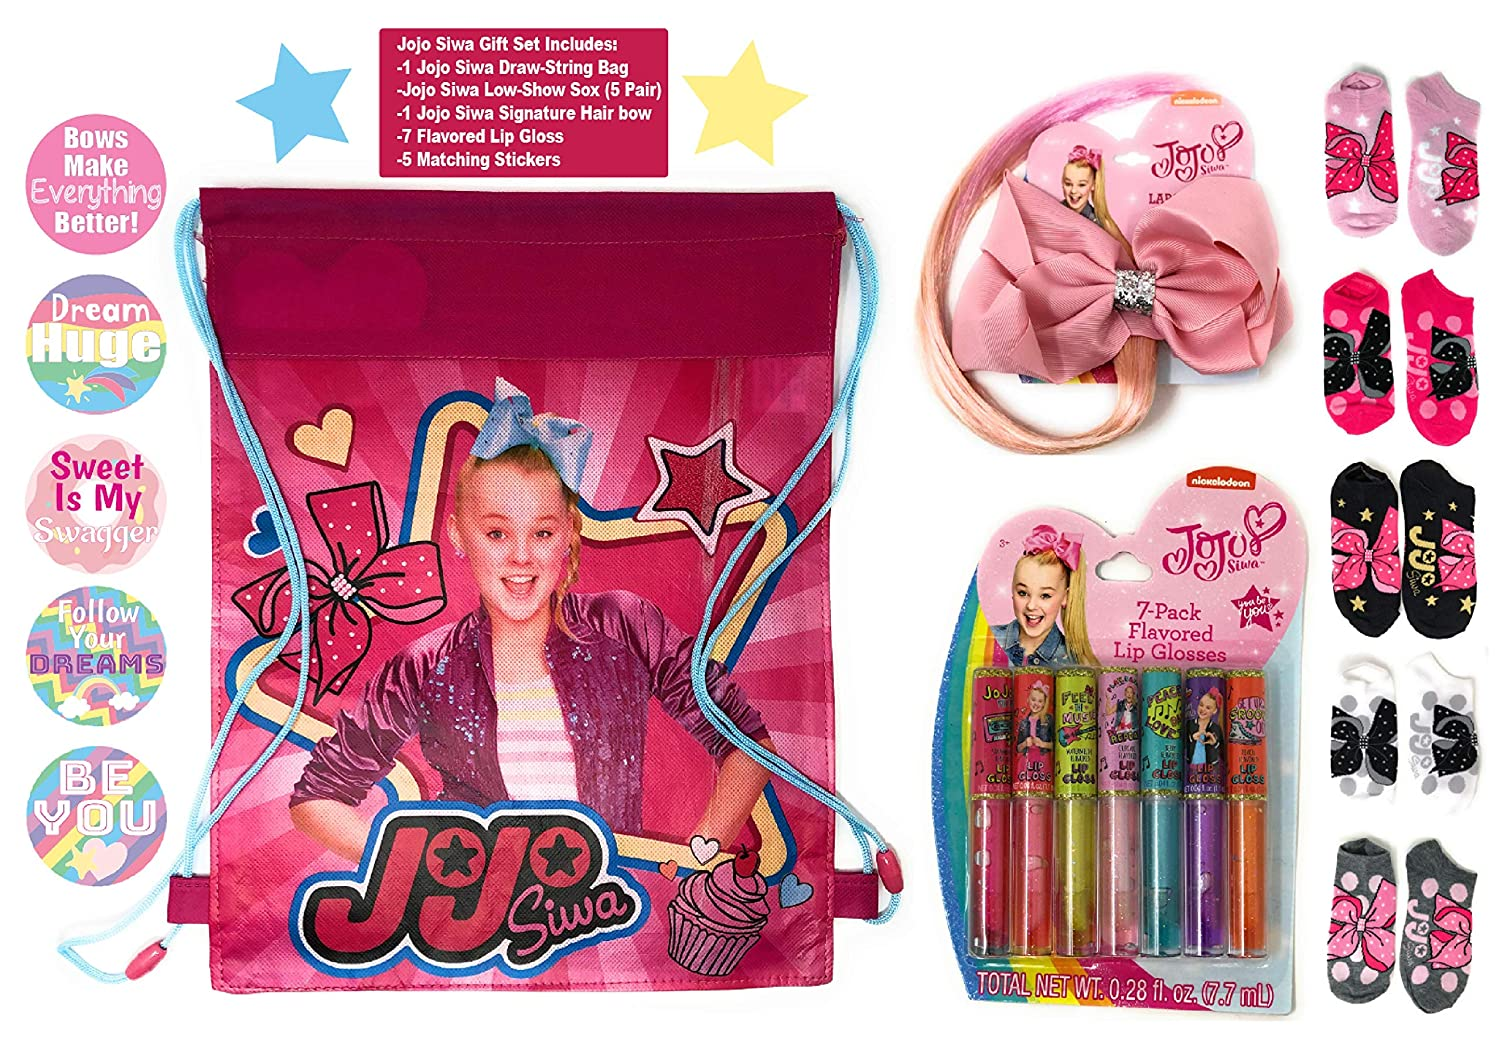 Amazon com jojo siwa stocking stuffers for girls birthday gift sets for girls christmas gift ideas for little girls jojo siwa accessories fun presents